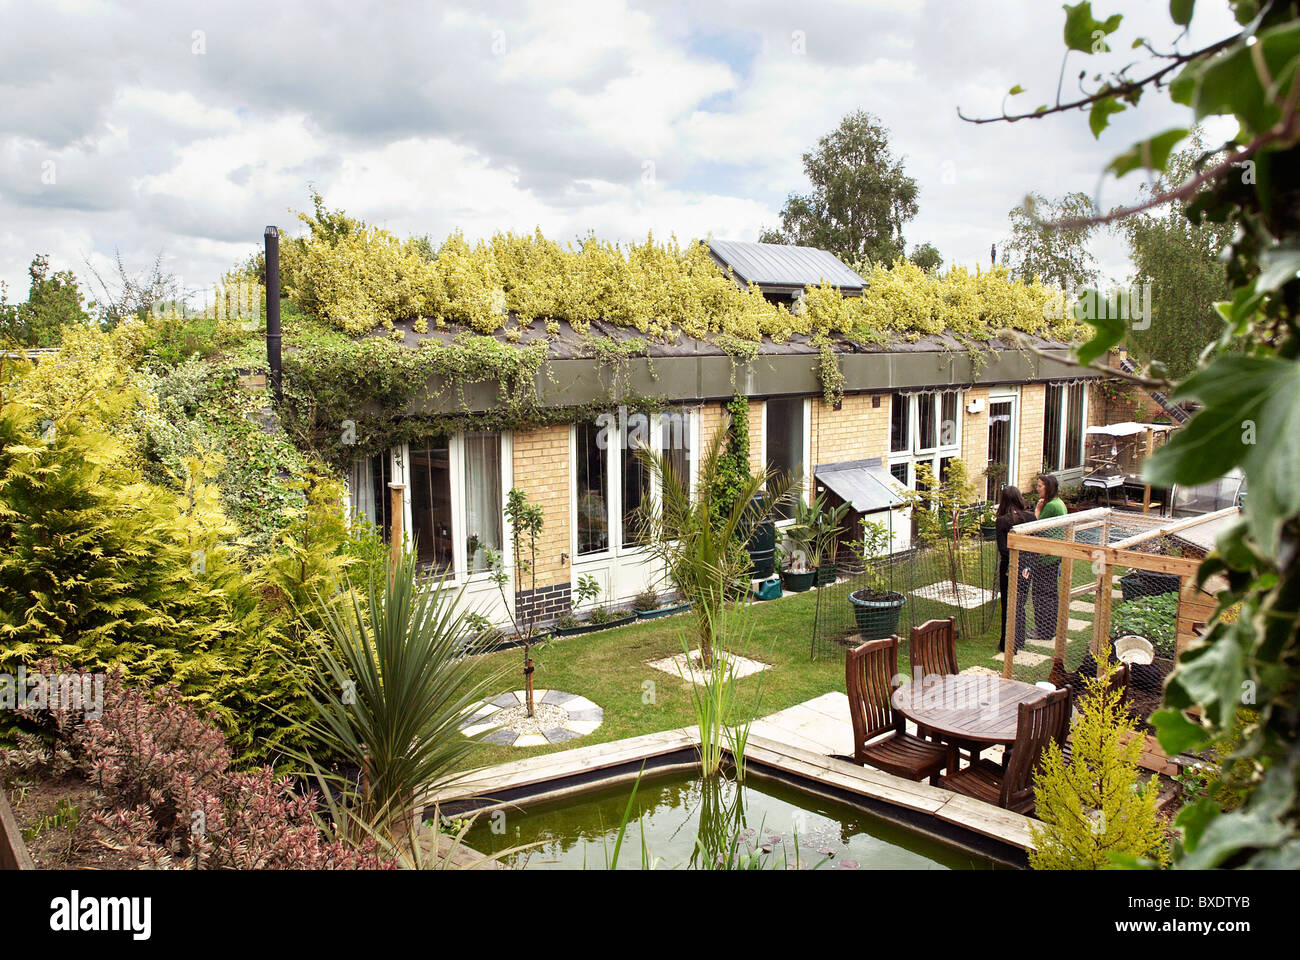 honingham earth sheltered social housing scheme which comprises of